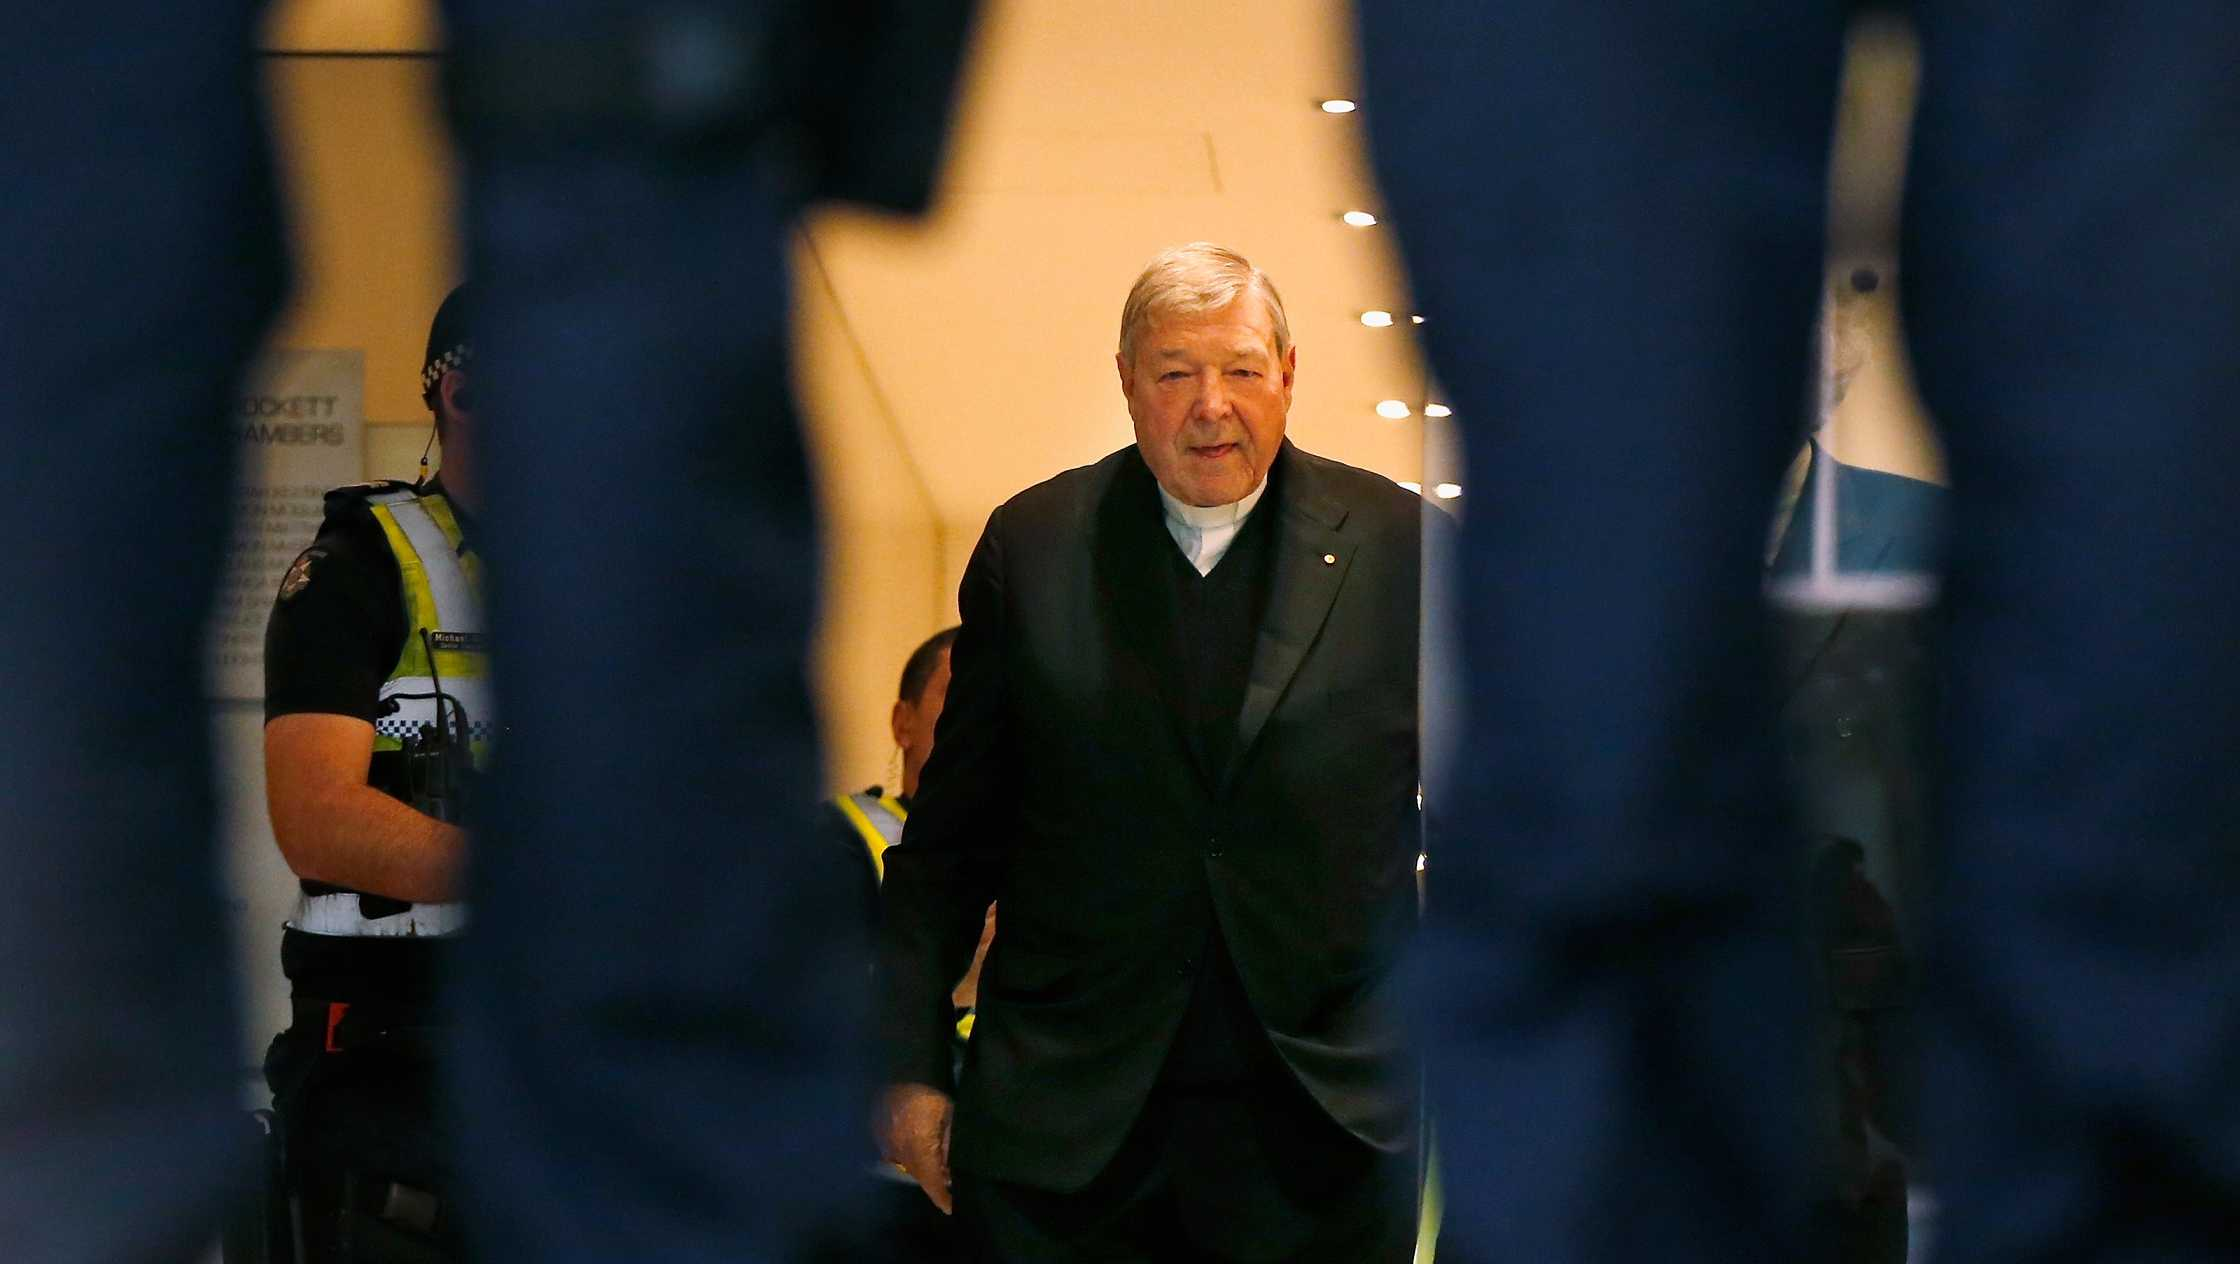 Cardinal George Pell walks with a police escort from his lawyers office to the Melbourne Magistrates' Court on October 6, 2017 in Melbourne, Australia.